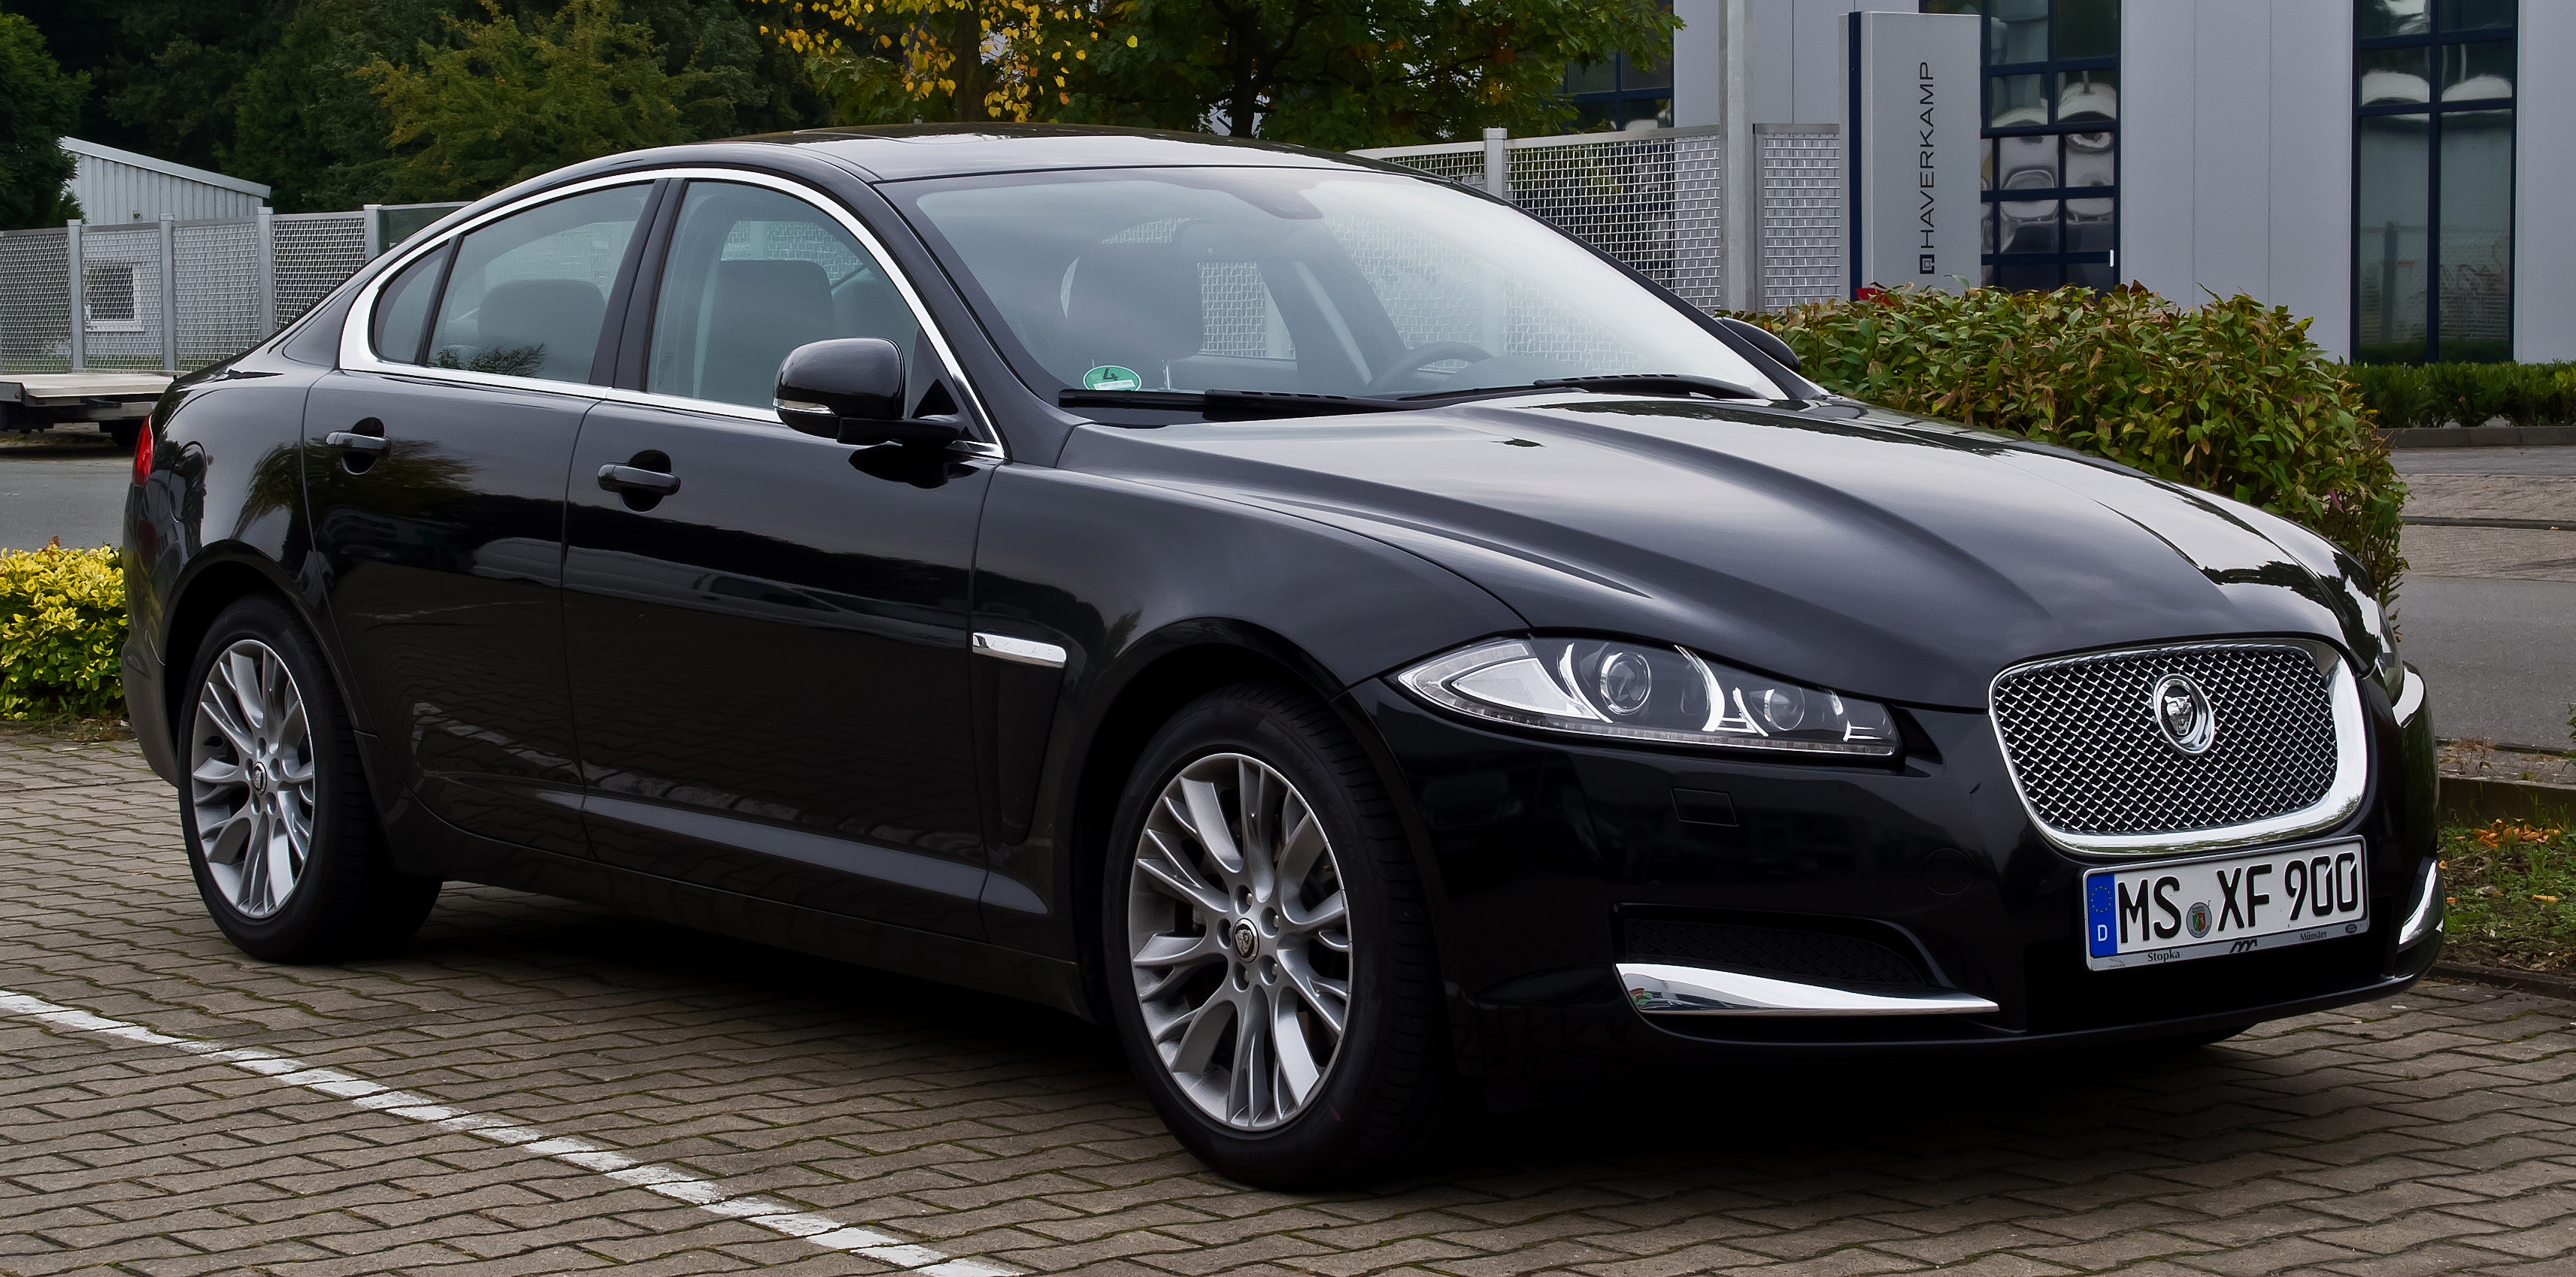 Jaguar Xf Pictures Information And Specs Auto